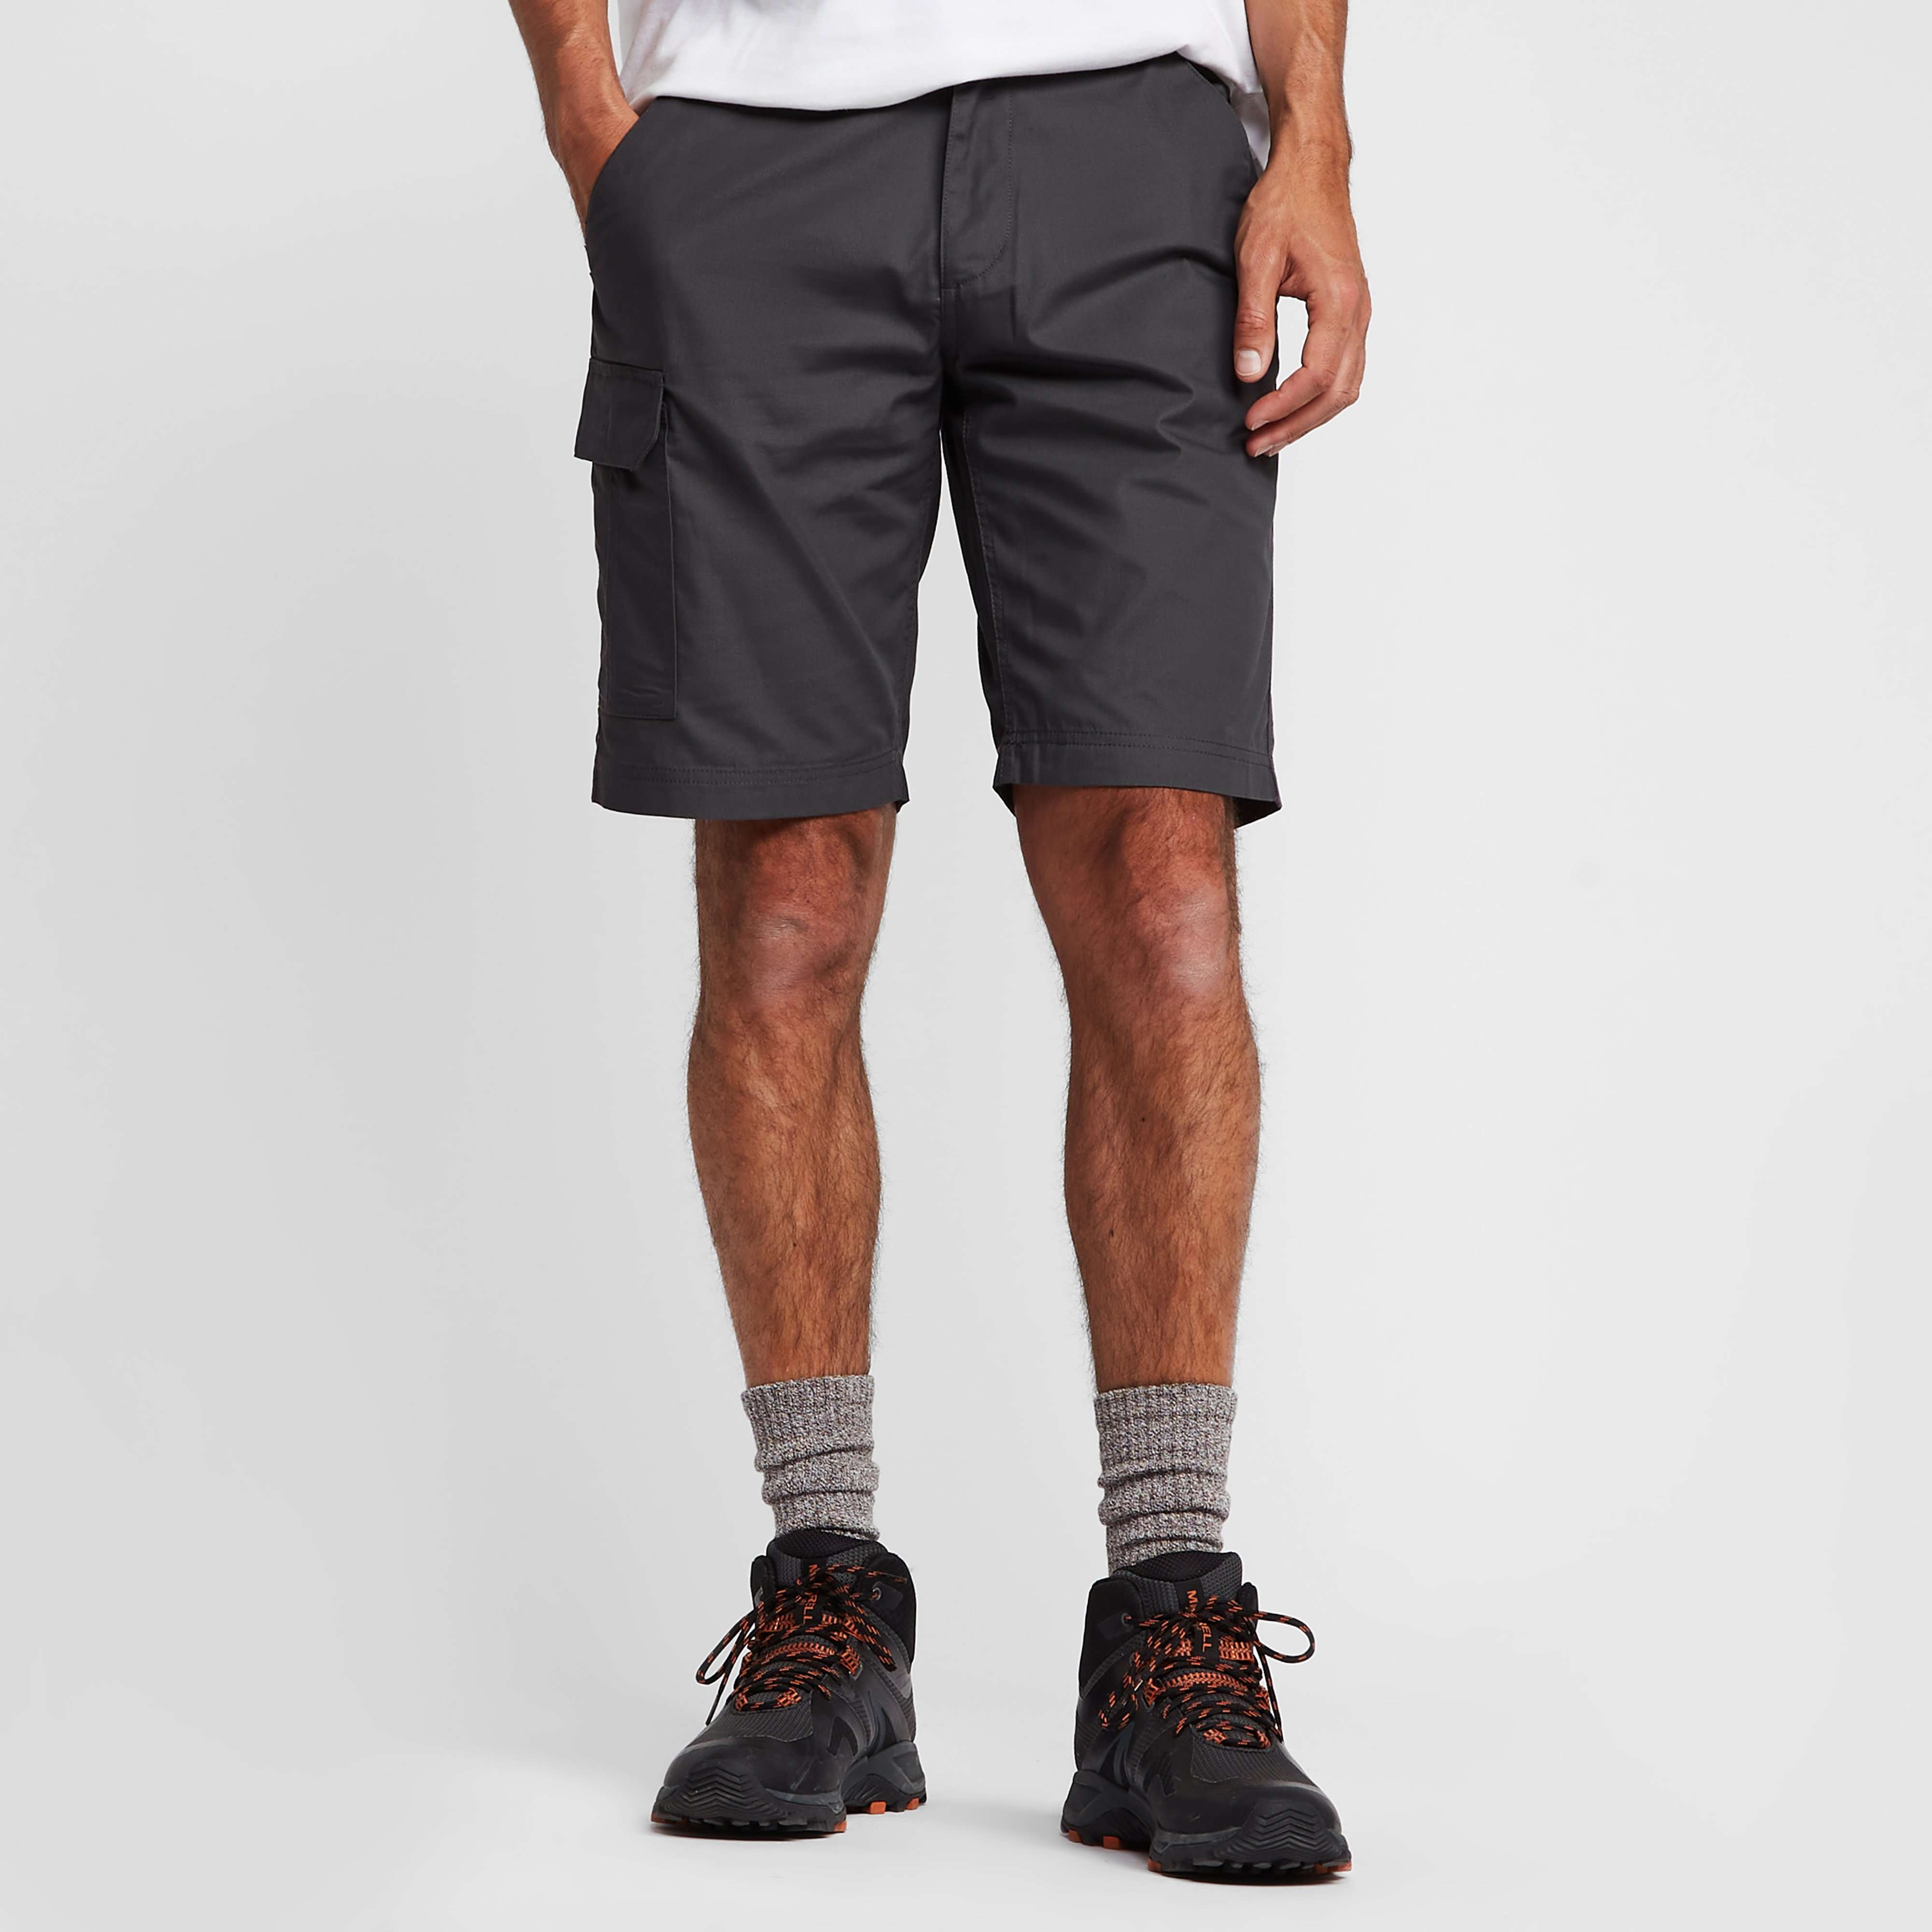 PETER STORM Men's Ramble II Walking Shorts